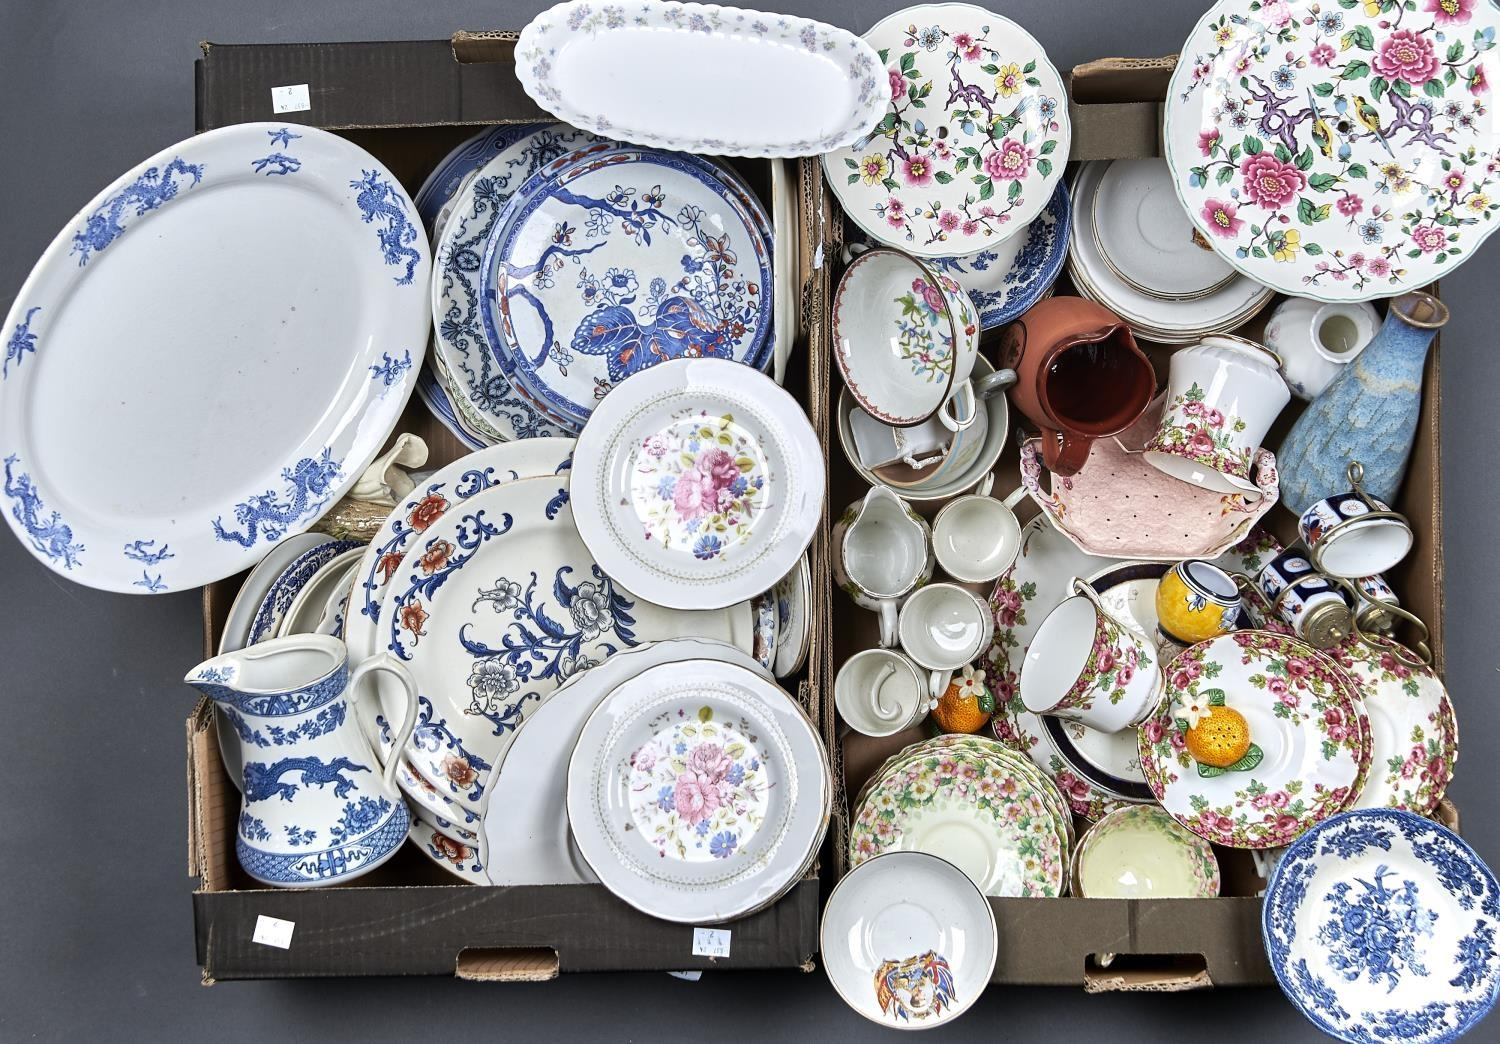 MISCELLANEOUS DECORATIVE CERAMICS, TO INCLUDE FOLEY, WEDGWOOD, ROYAL STAFFORD, COALPORT,